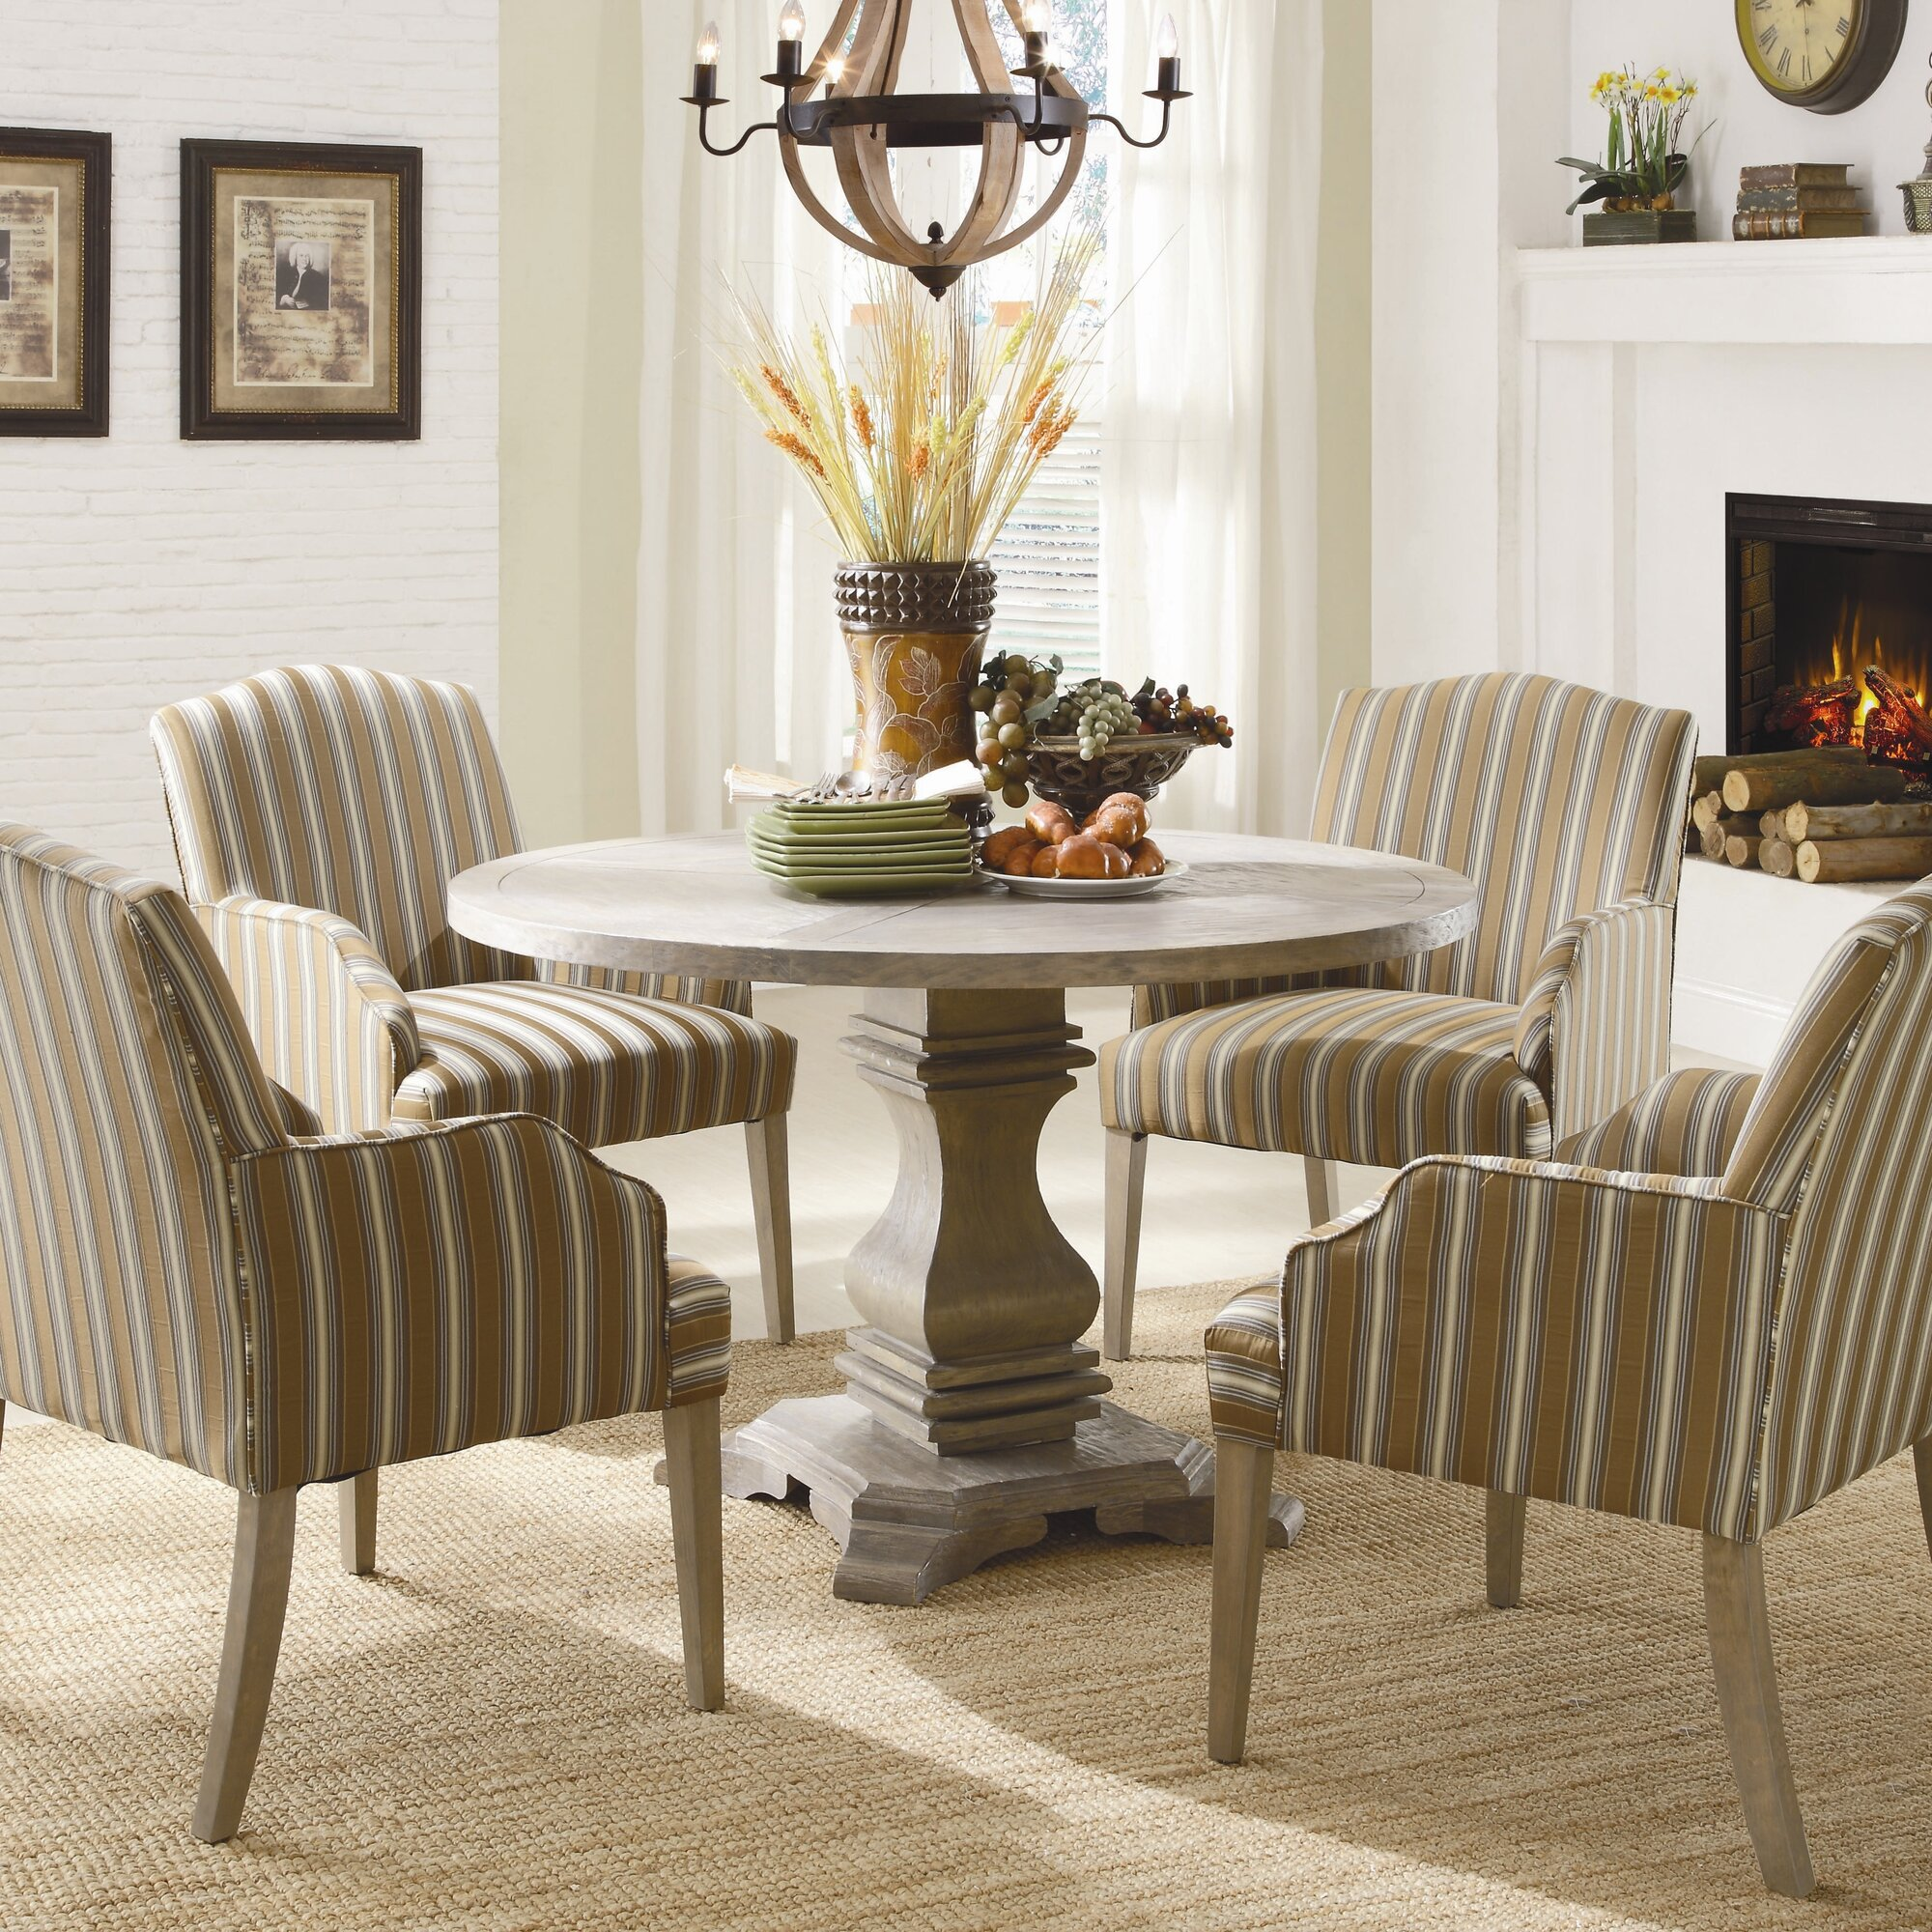 ballard designs dining table ceylon whitewash 7 piece rectangular dining set decor look alikes wayfair euro - Wayfair Dining Chairs